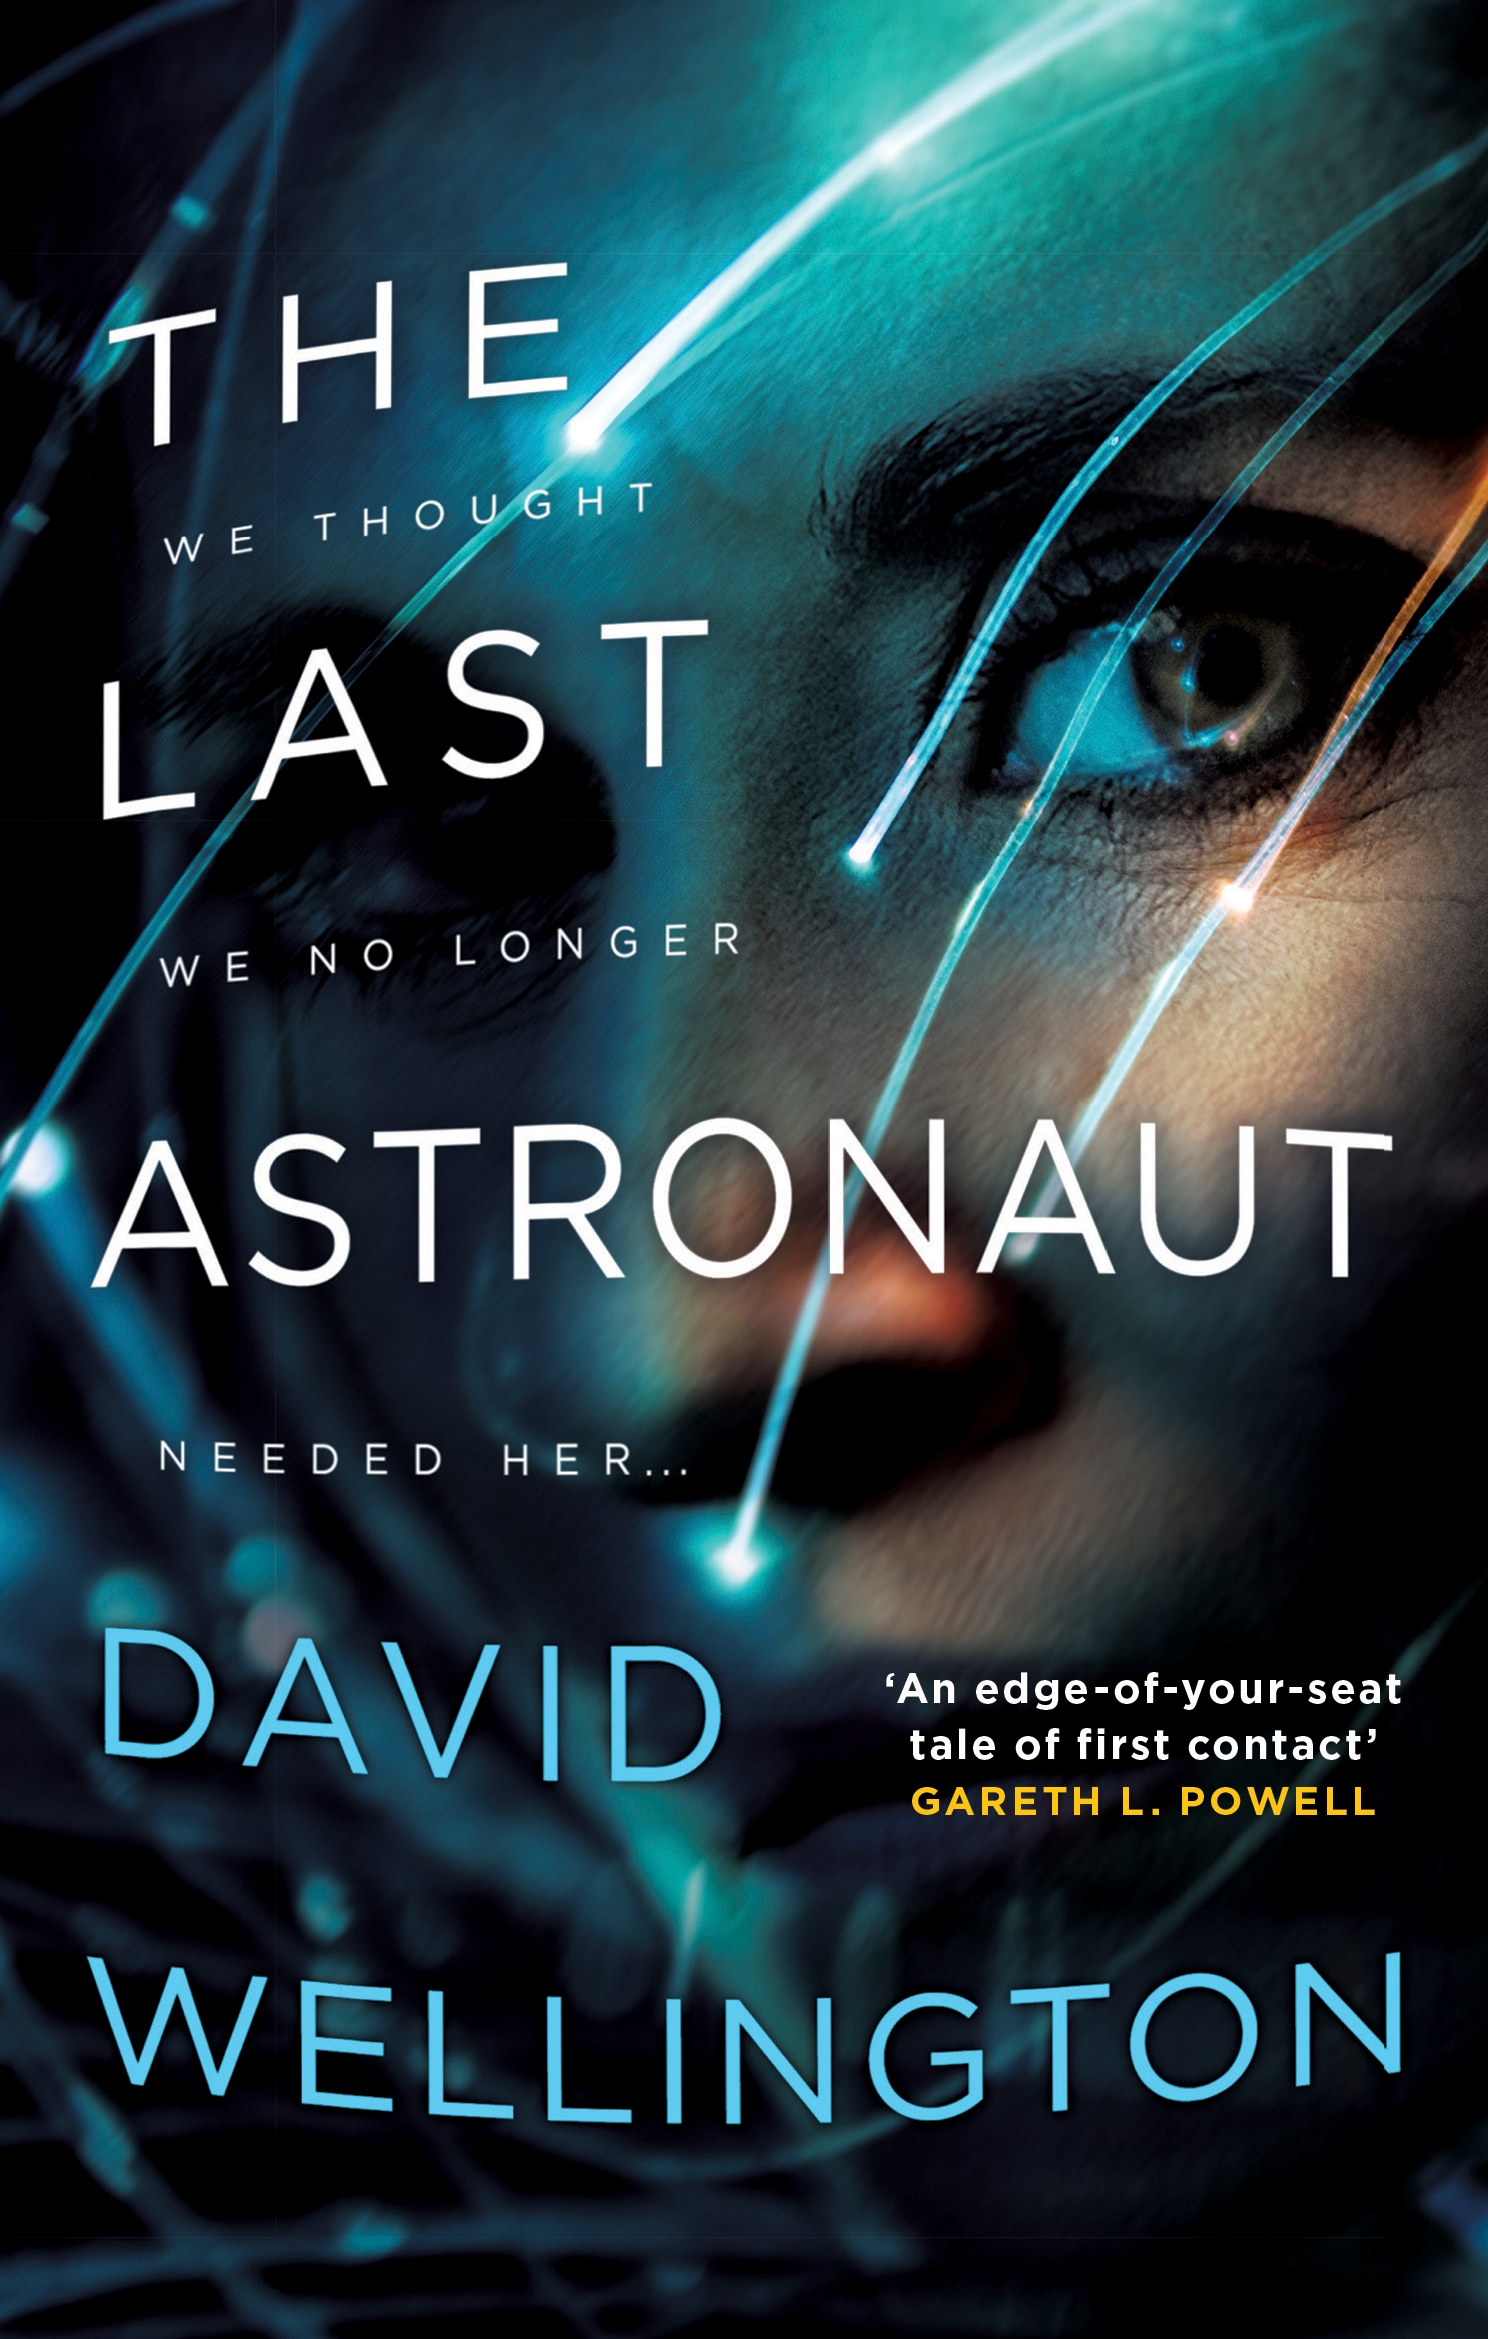 David Wellington: Five Things I Learned Writing The Last Astronaut